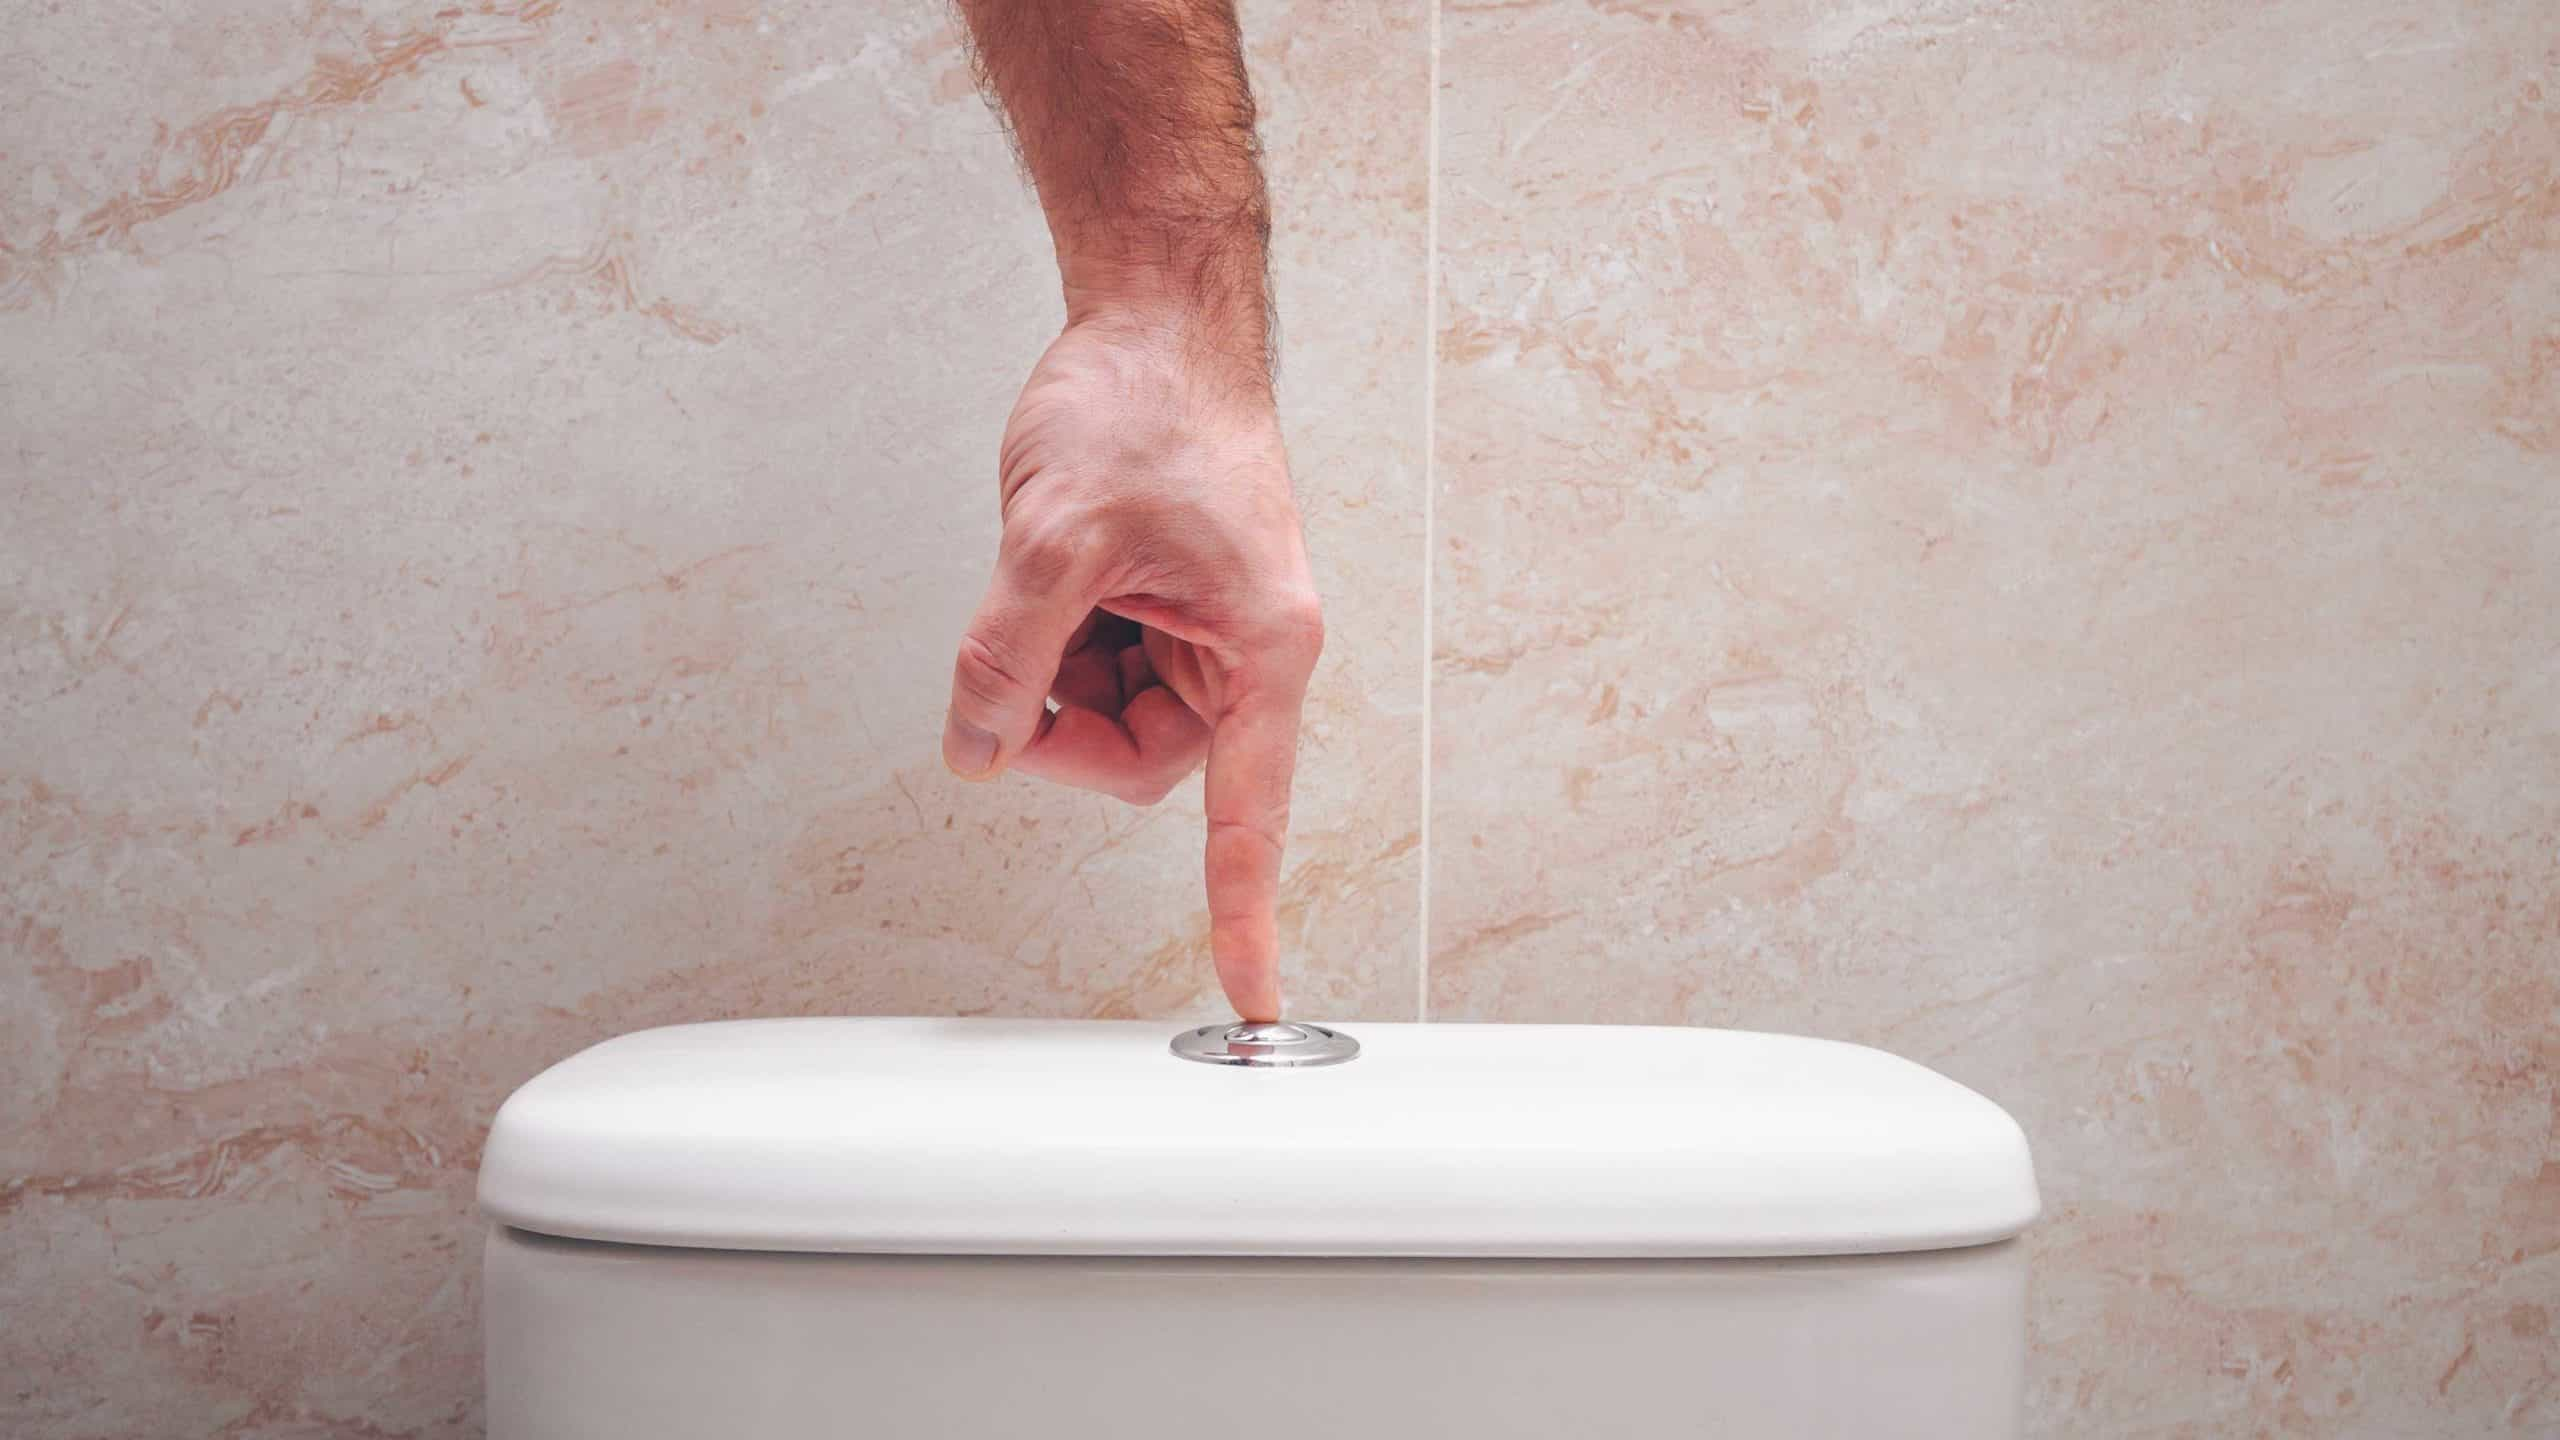 sinking asx share price represented by hand pushing flush button on toilet